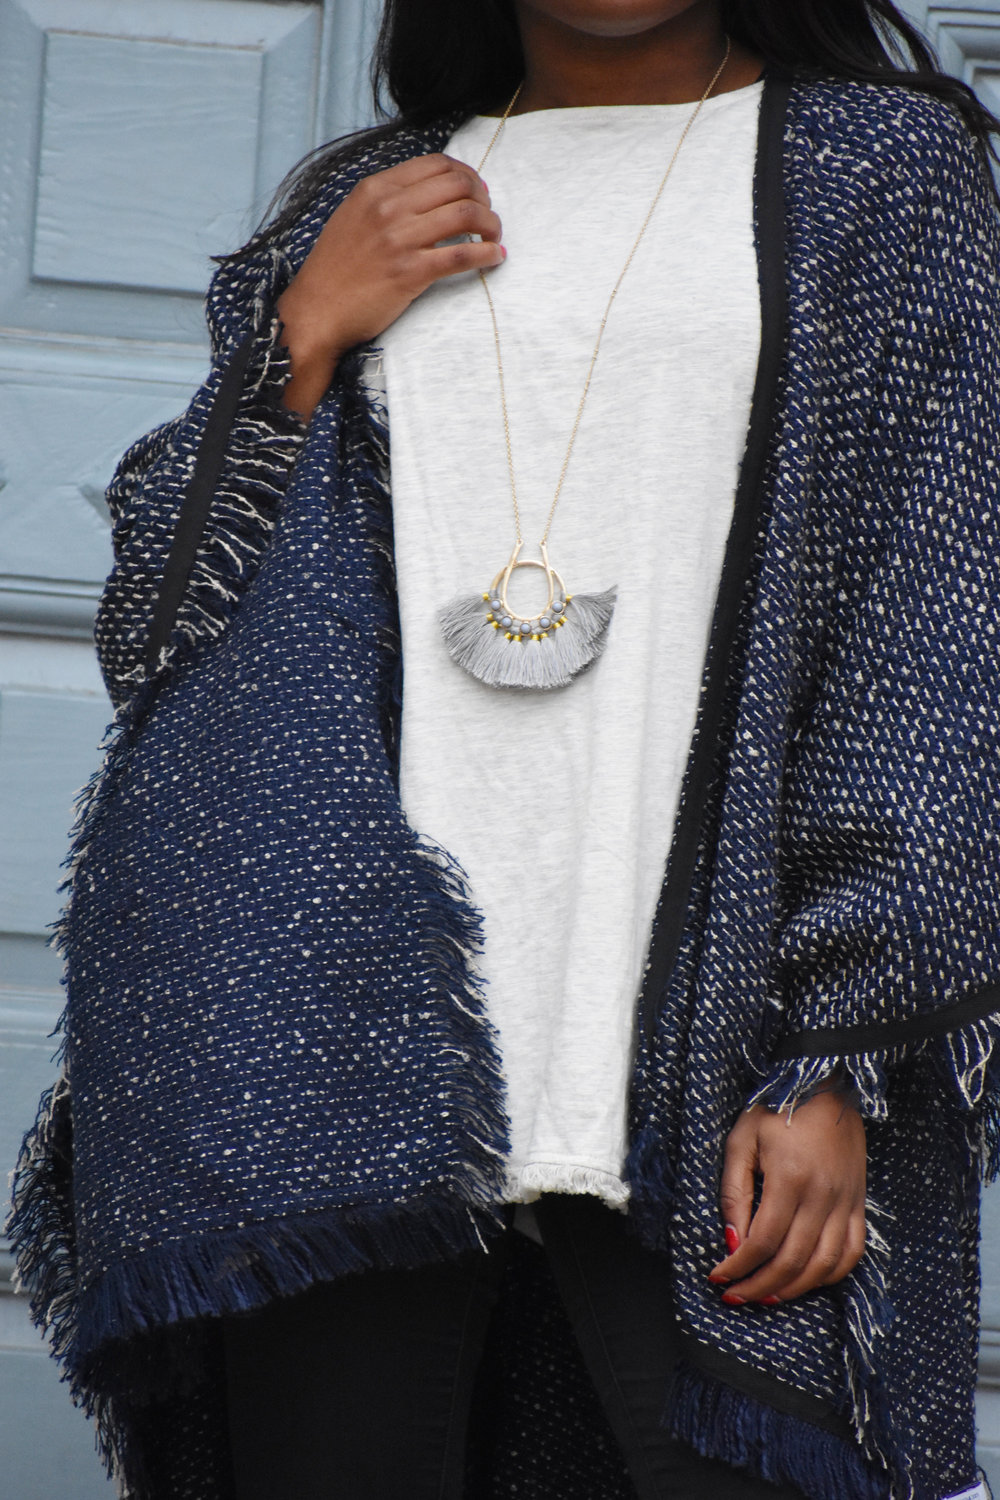 THE DEETS:  Fanned Out Necklace -   Whistle & Wild   - $28